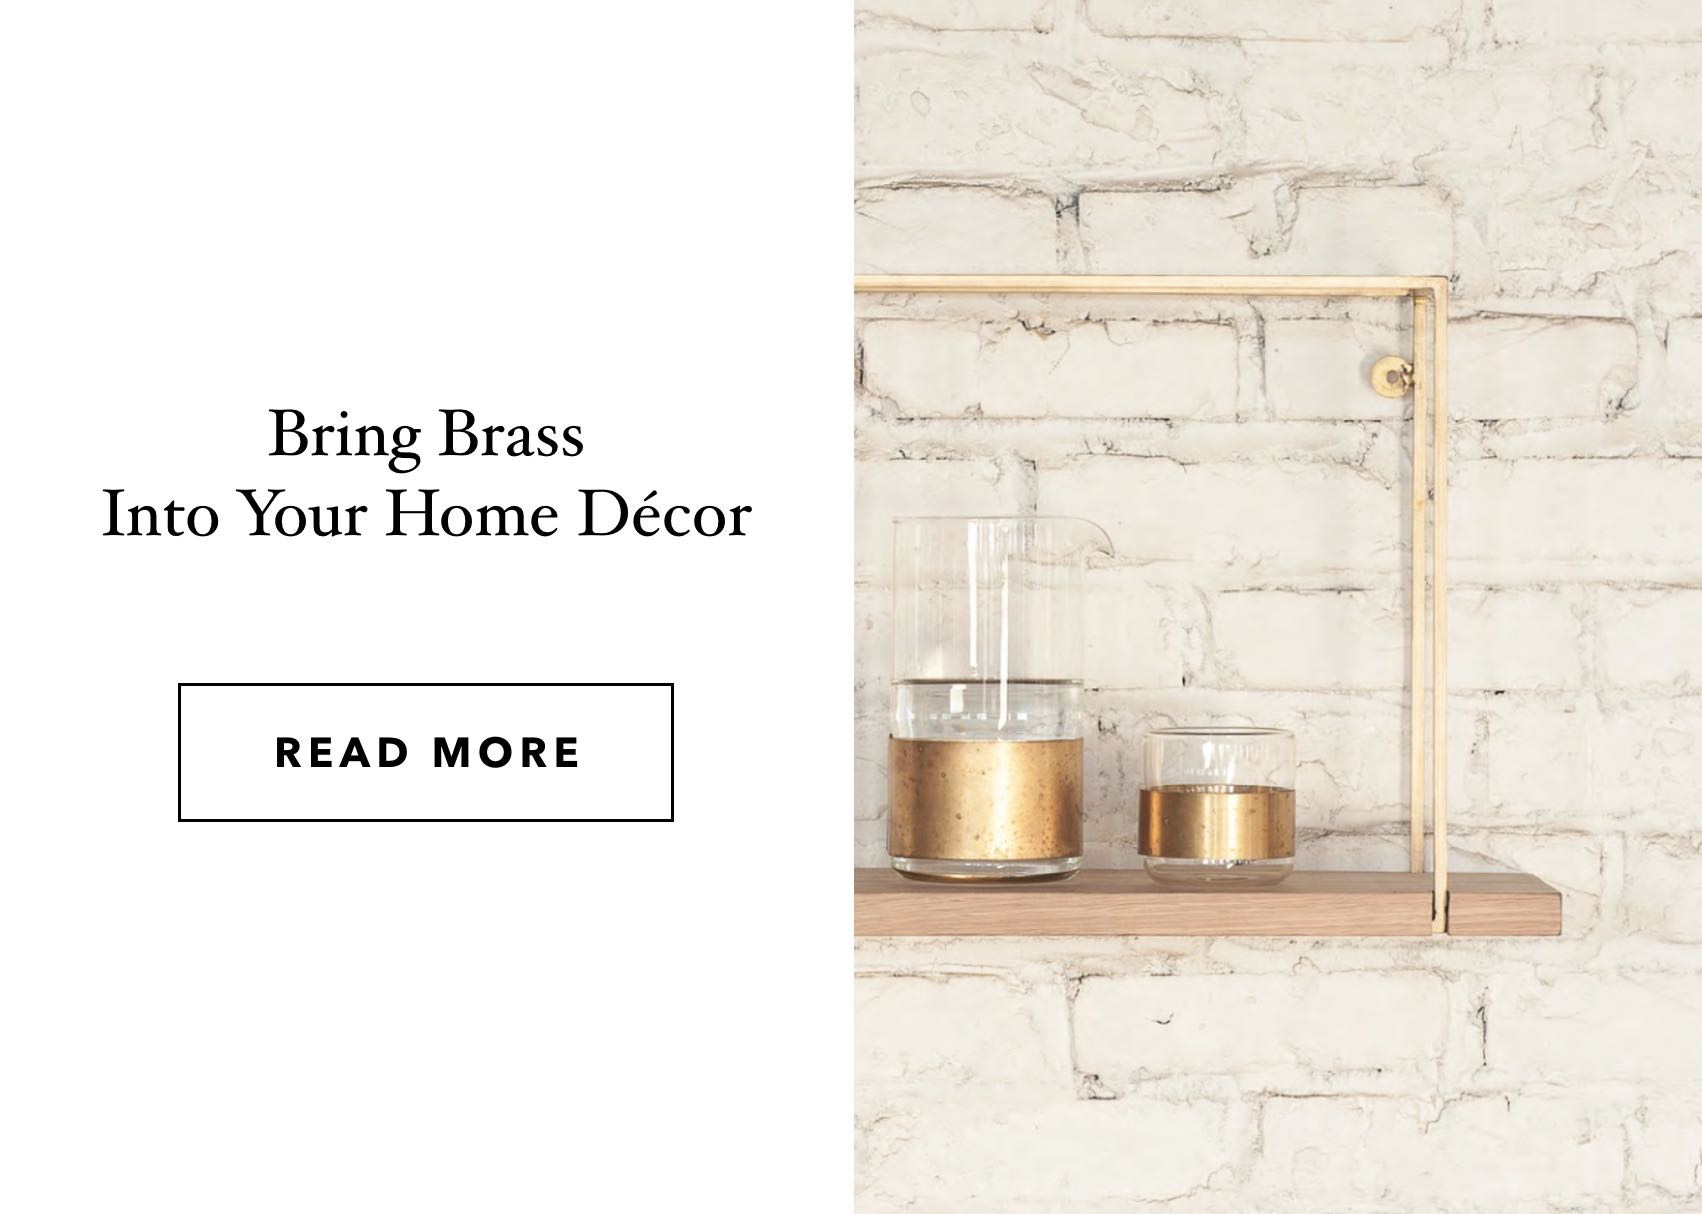 stylodeco.com-blog-bring-brass-into-your-home-decor-banner.jpg